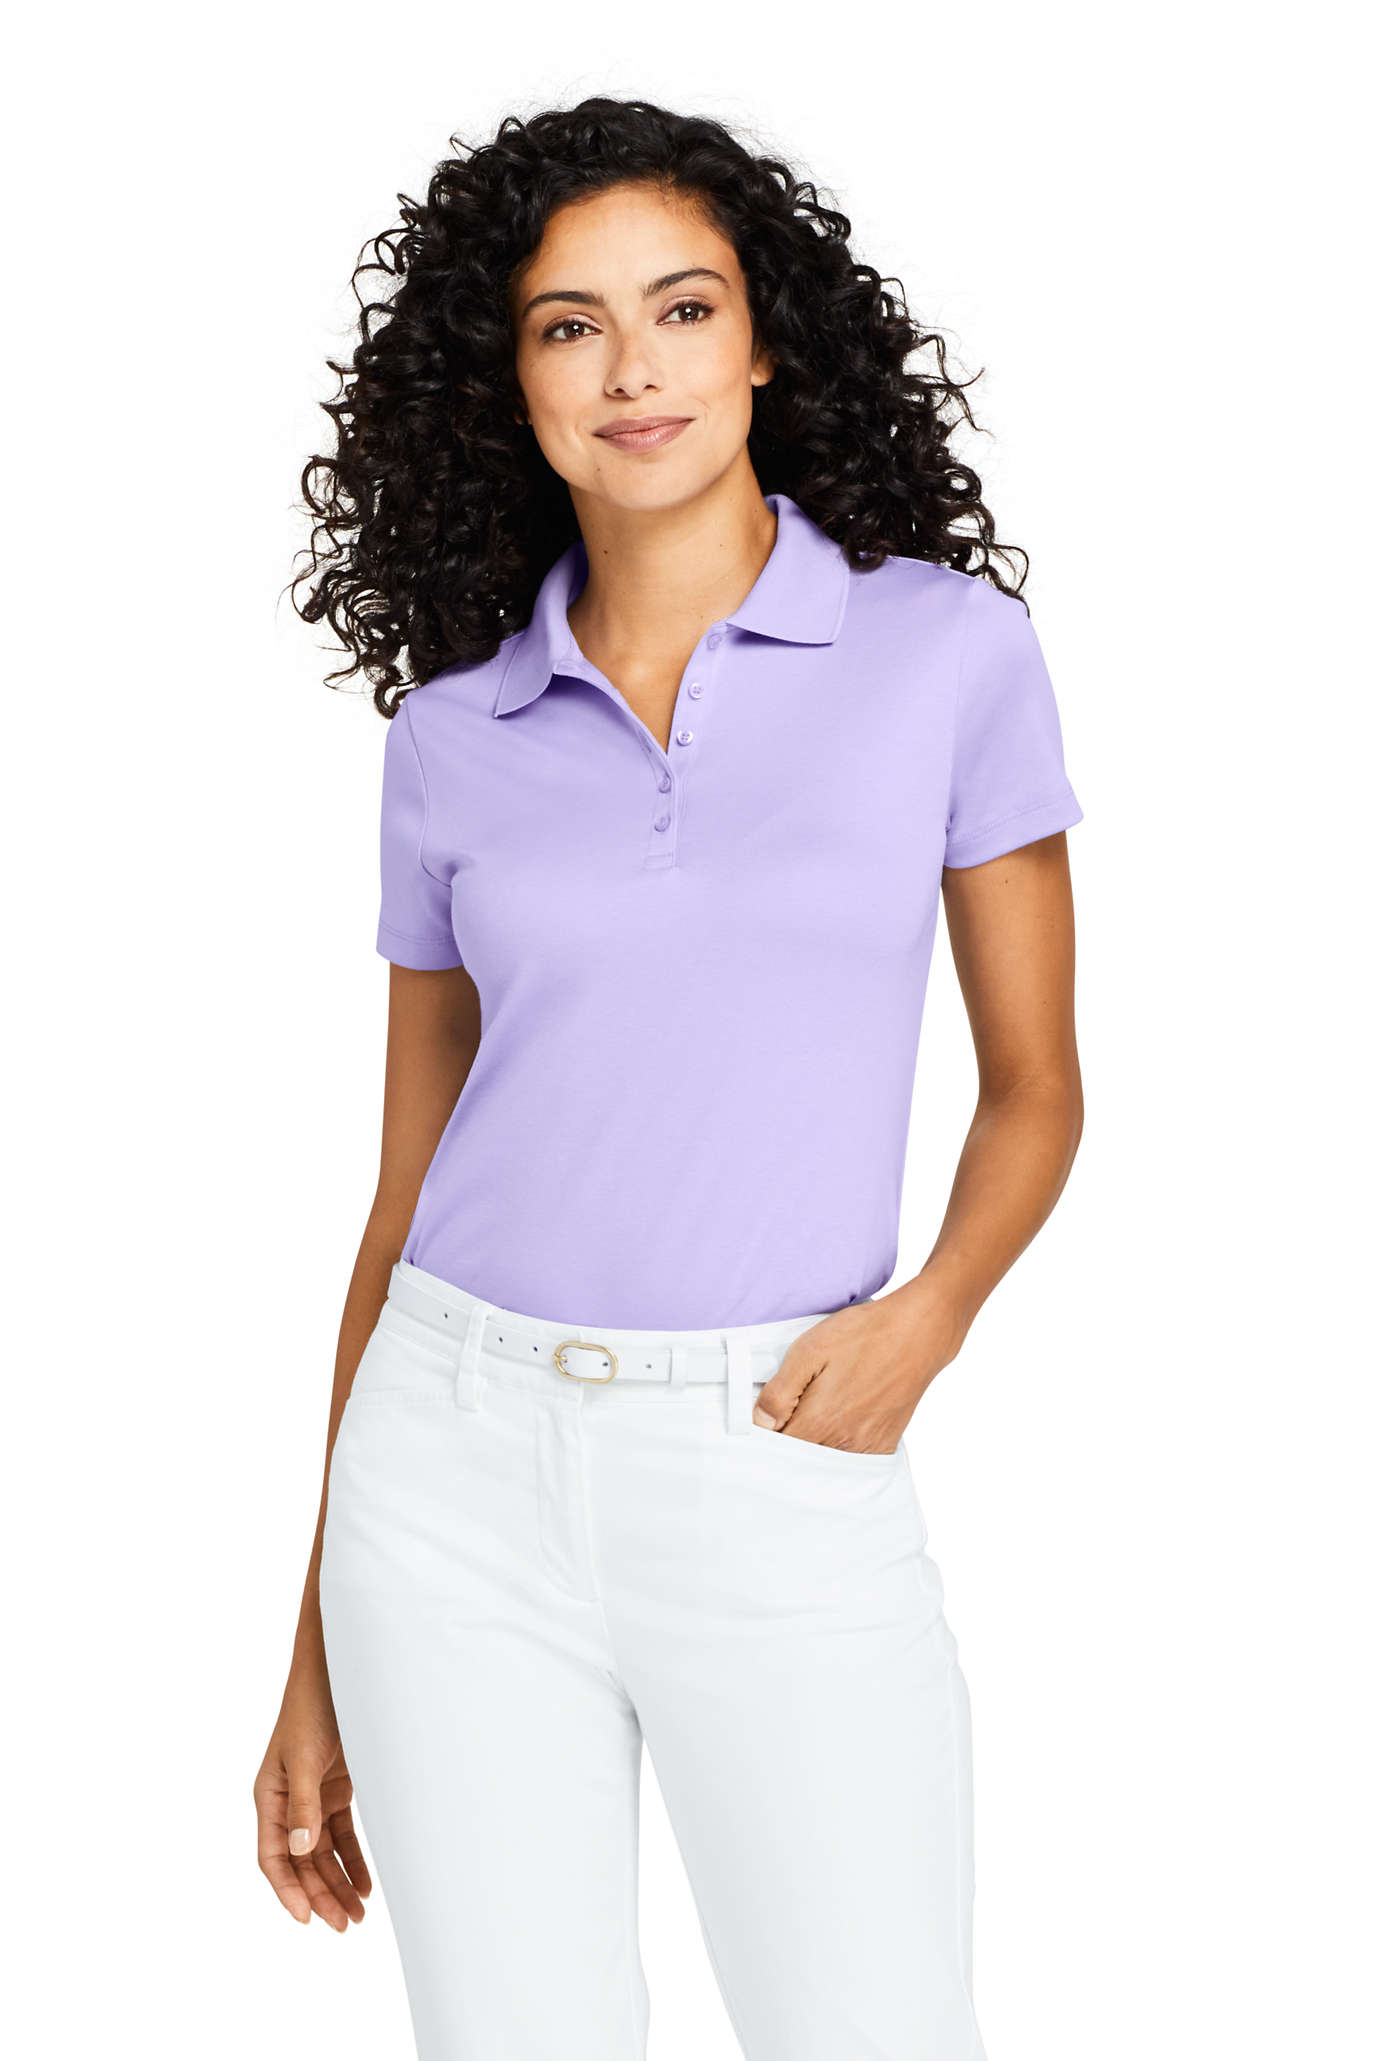 2c8770d01a Women's Polo Shirts | 100% Cotton Petite, Plus, 3/4, Short & Long Sleeve  Polos | Lands' End